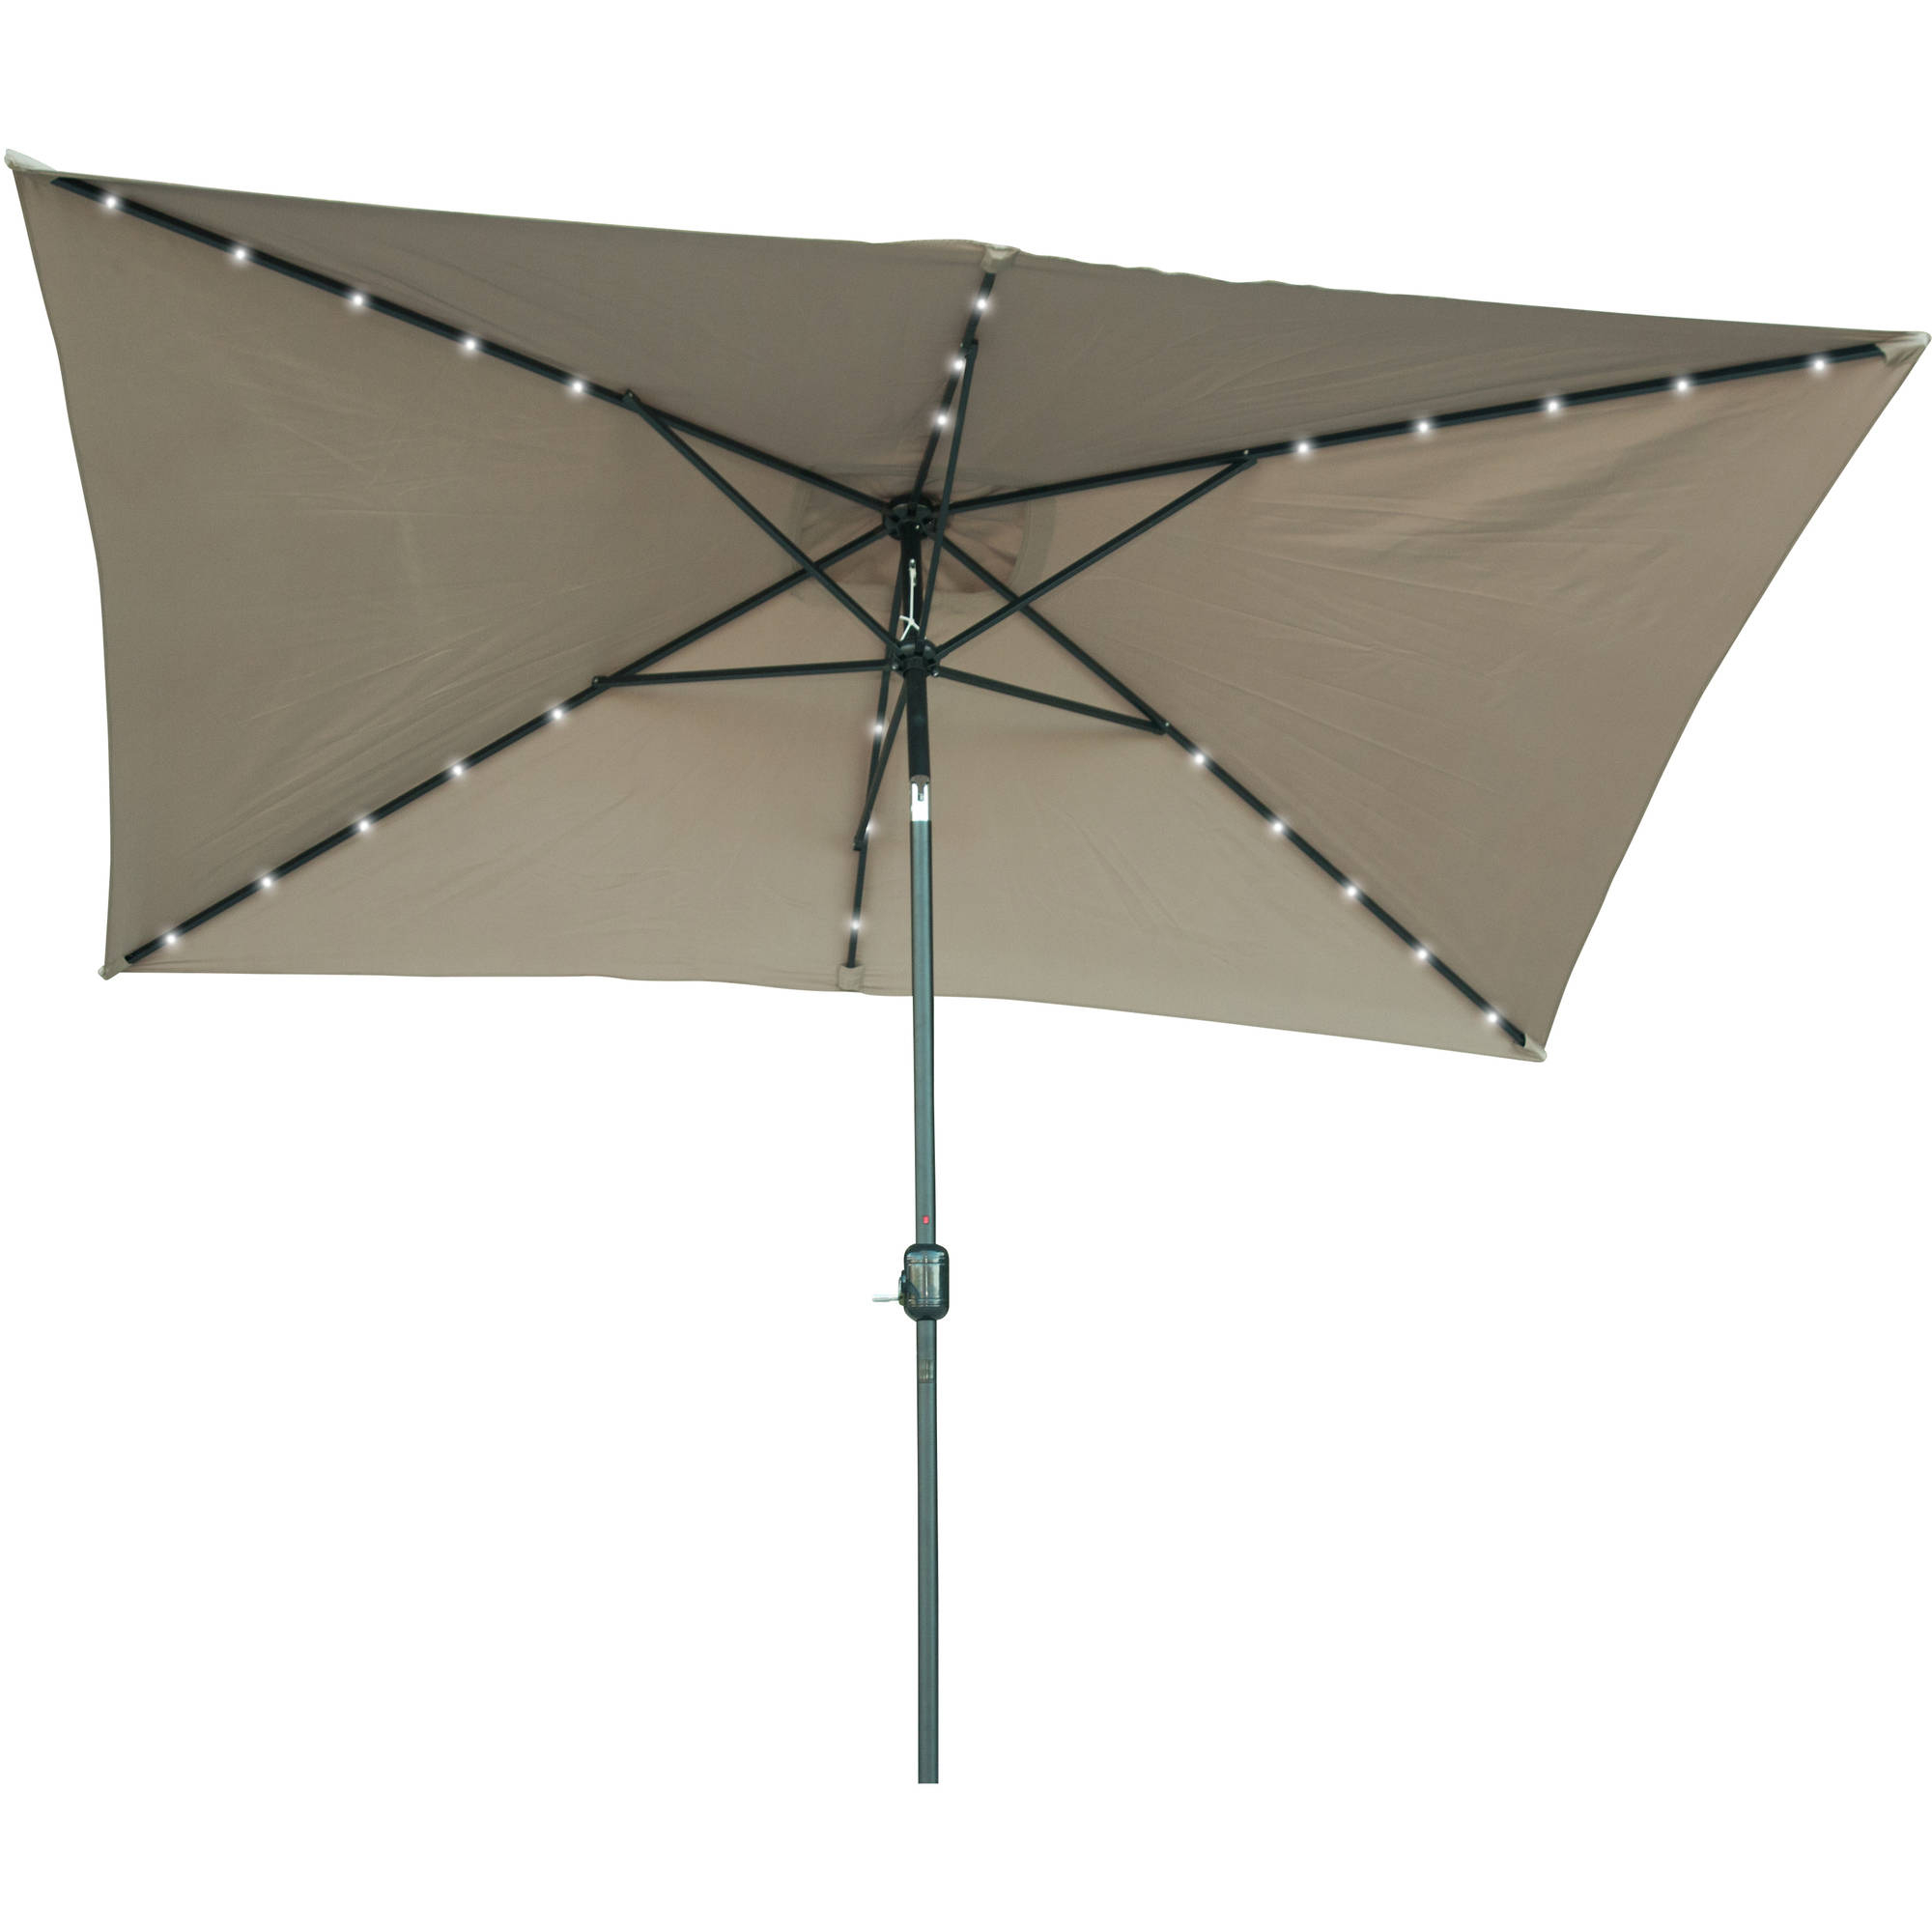 Solar Powered Led Patio Umbrellas With Regard To Fashionable Rectangular Solar Powered Led Lighted Patio Umbrella – 10' X (View 3 of 20)